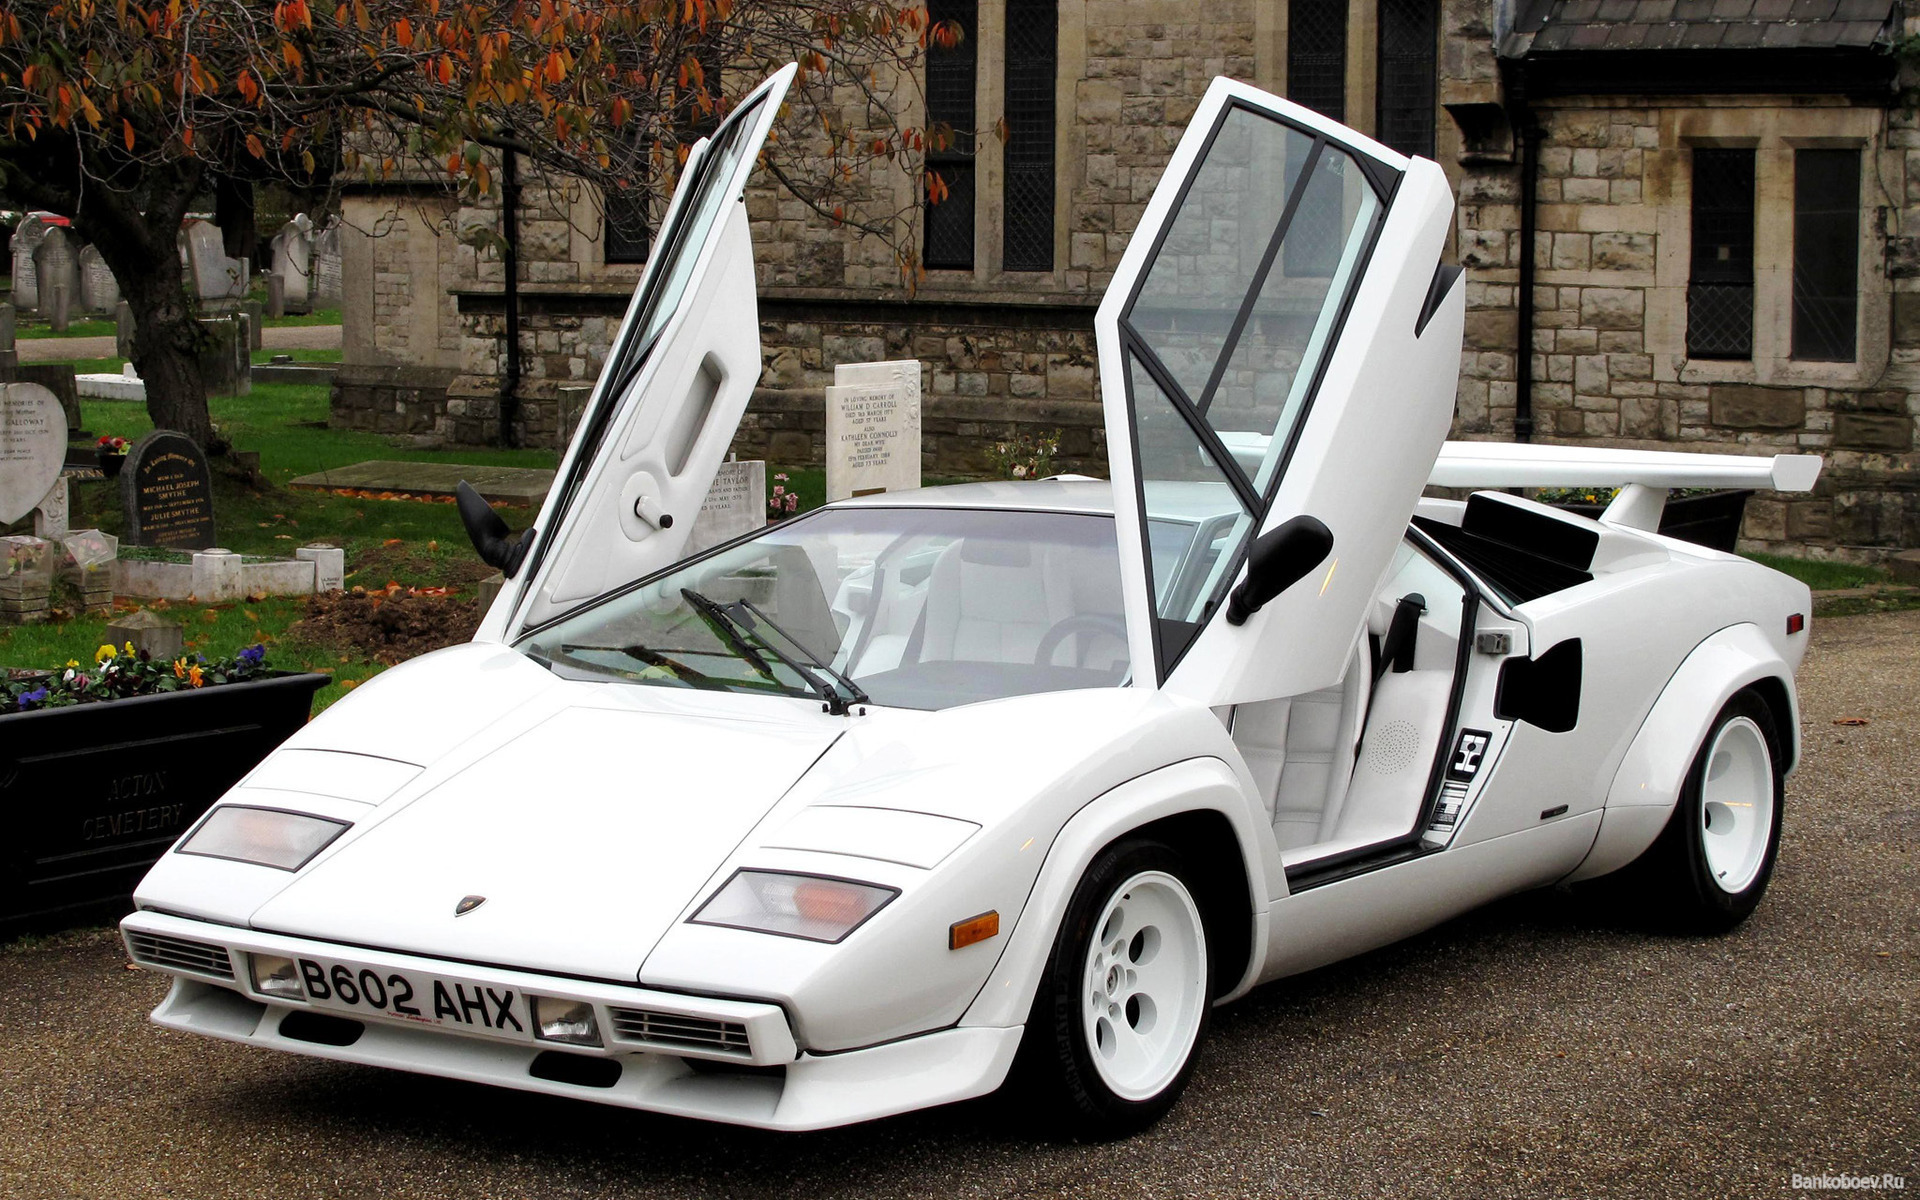 The Lamborghini Countach The Road